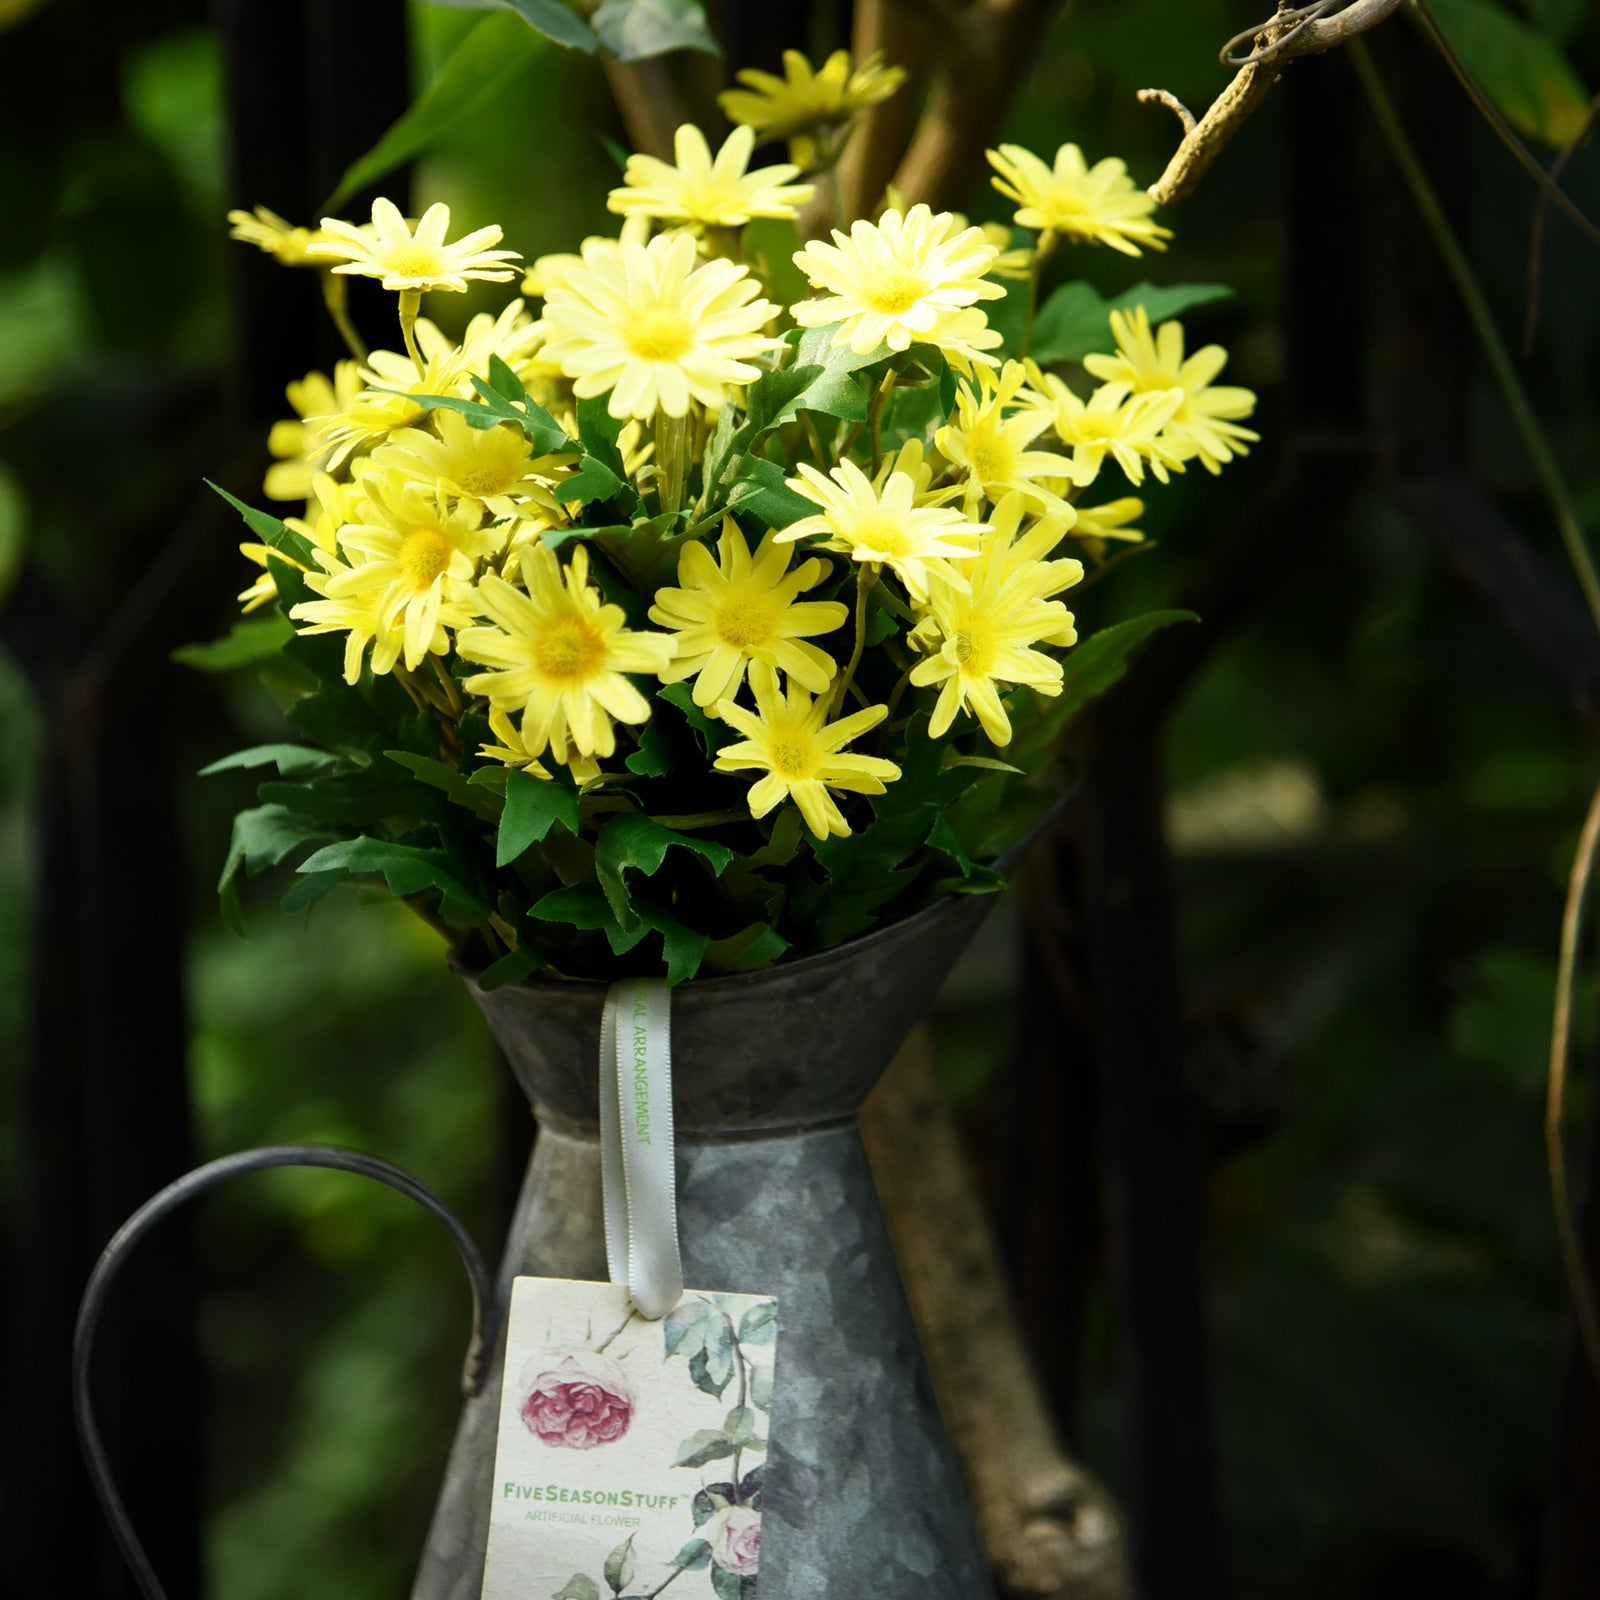 Daisy Silk Flowers Outdoor Artificial Flowers Arrangements (Sunny Yellow) 2 Bunches